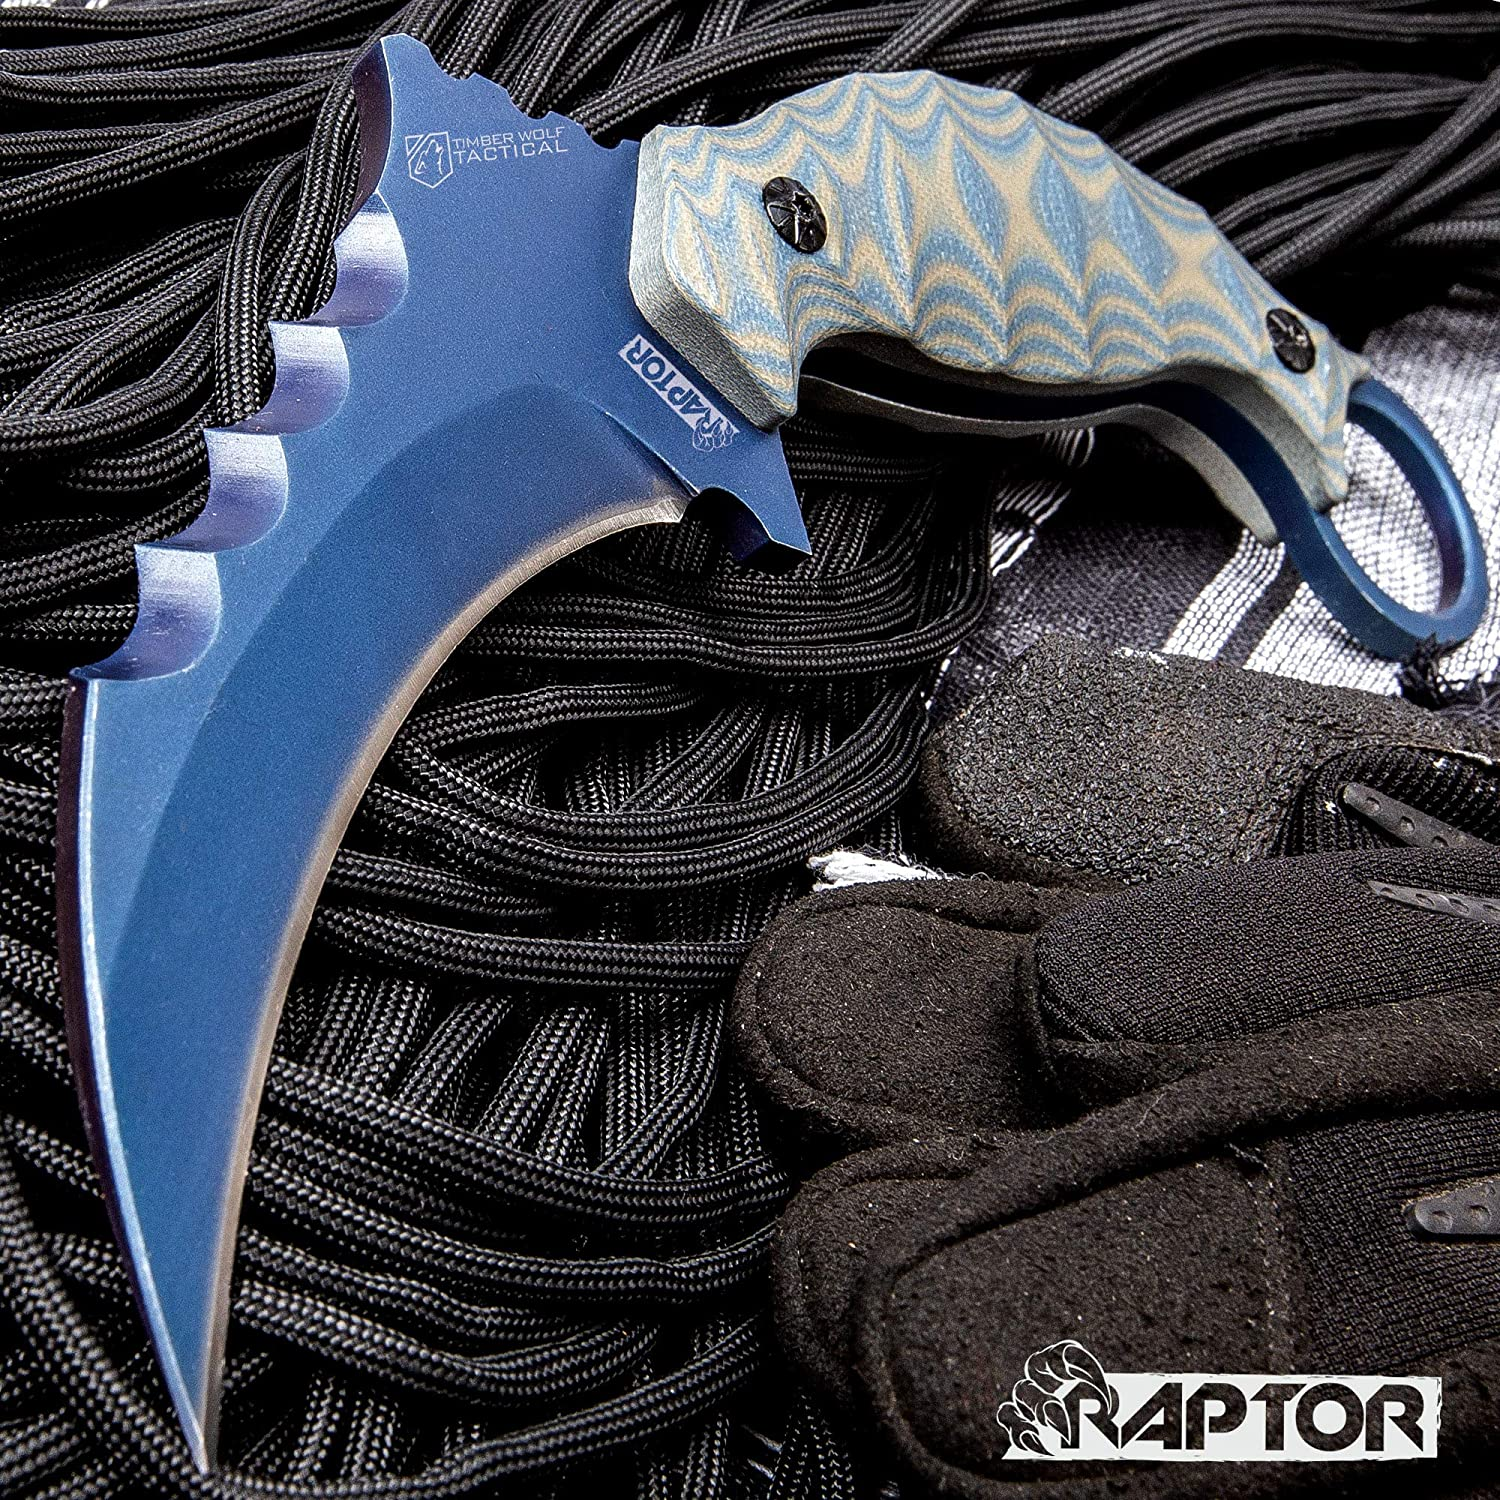 K EXCLUSIVE Blue Raptor Karambit with Sheath – 3Cr13 Stainless Steel, Titanium Coated, G10 Handle Scales, Open-Ring Pommel – Length 8 1 4